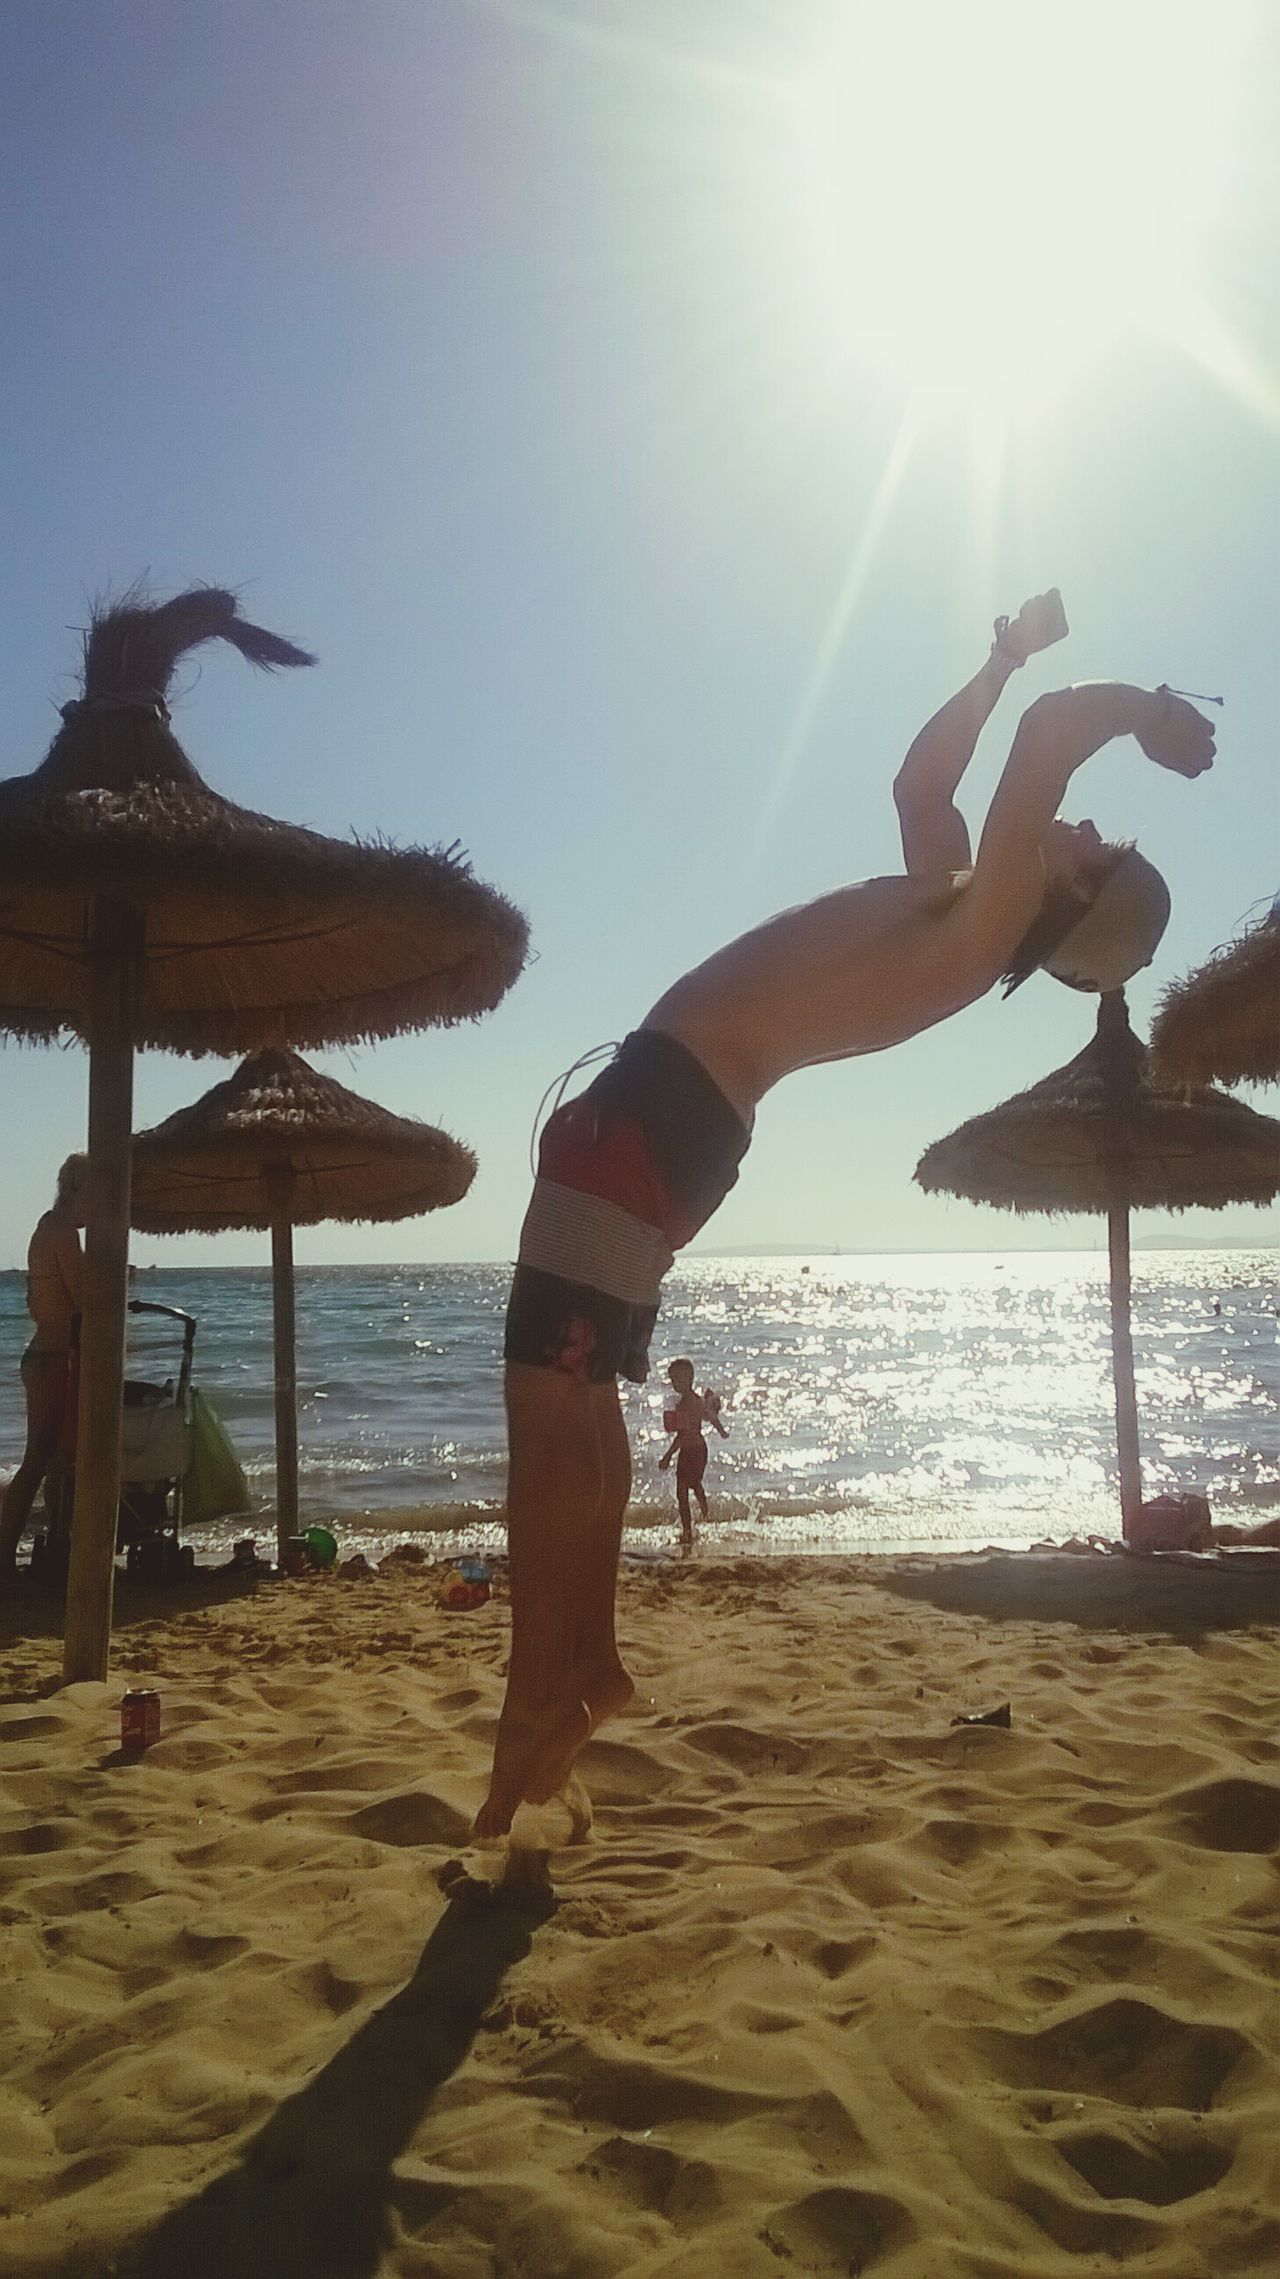 Backflip Mallorca Beach Parkour Freerunning SPAIN Sea Sun Flip